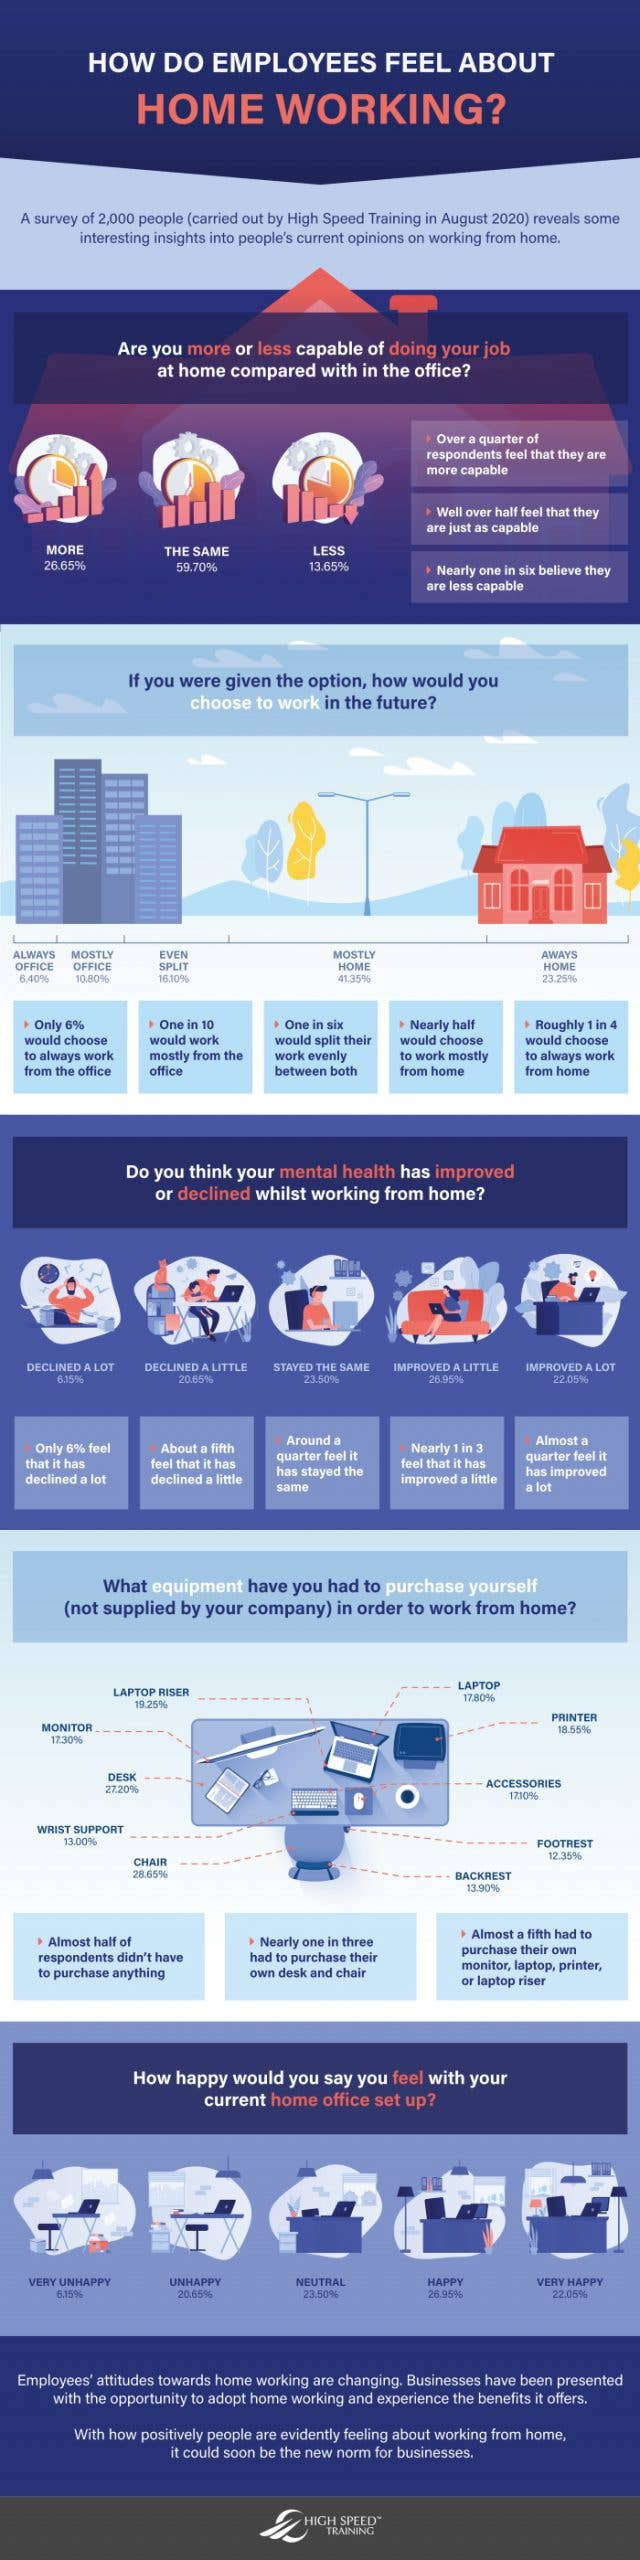 How do employees feel about home working study infographic by high speed training